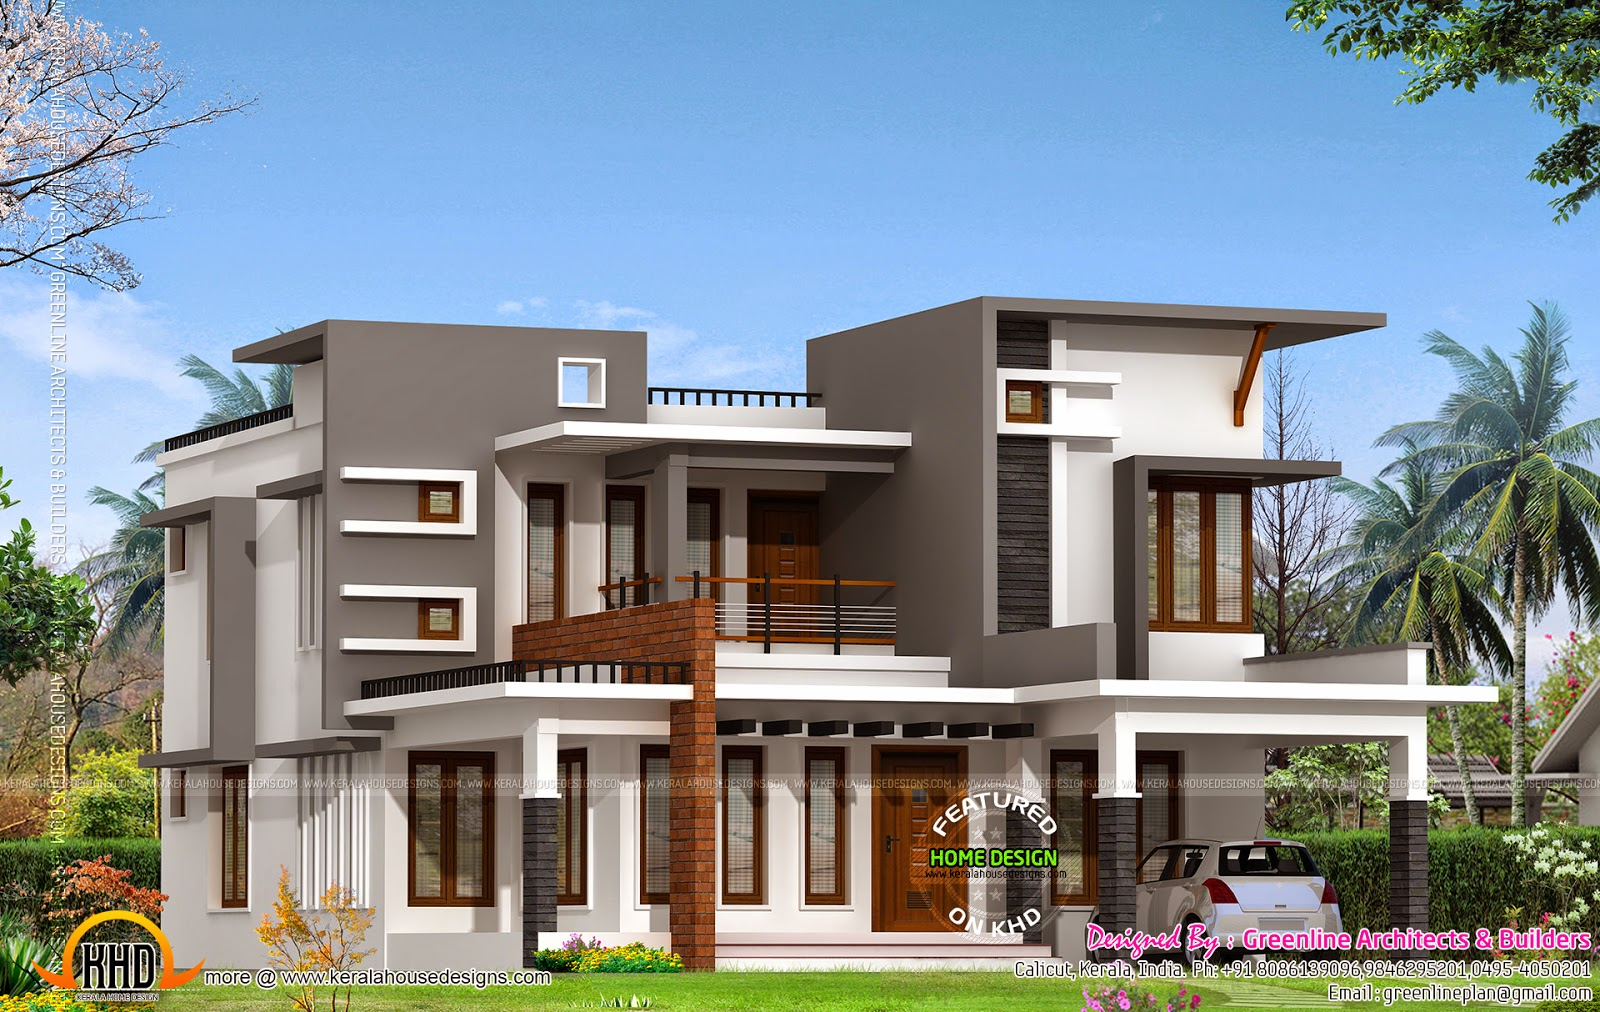 Contemporary house with estimate cost 28 lakhs kerala for Modern house cost